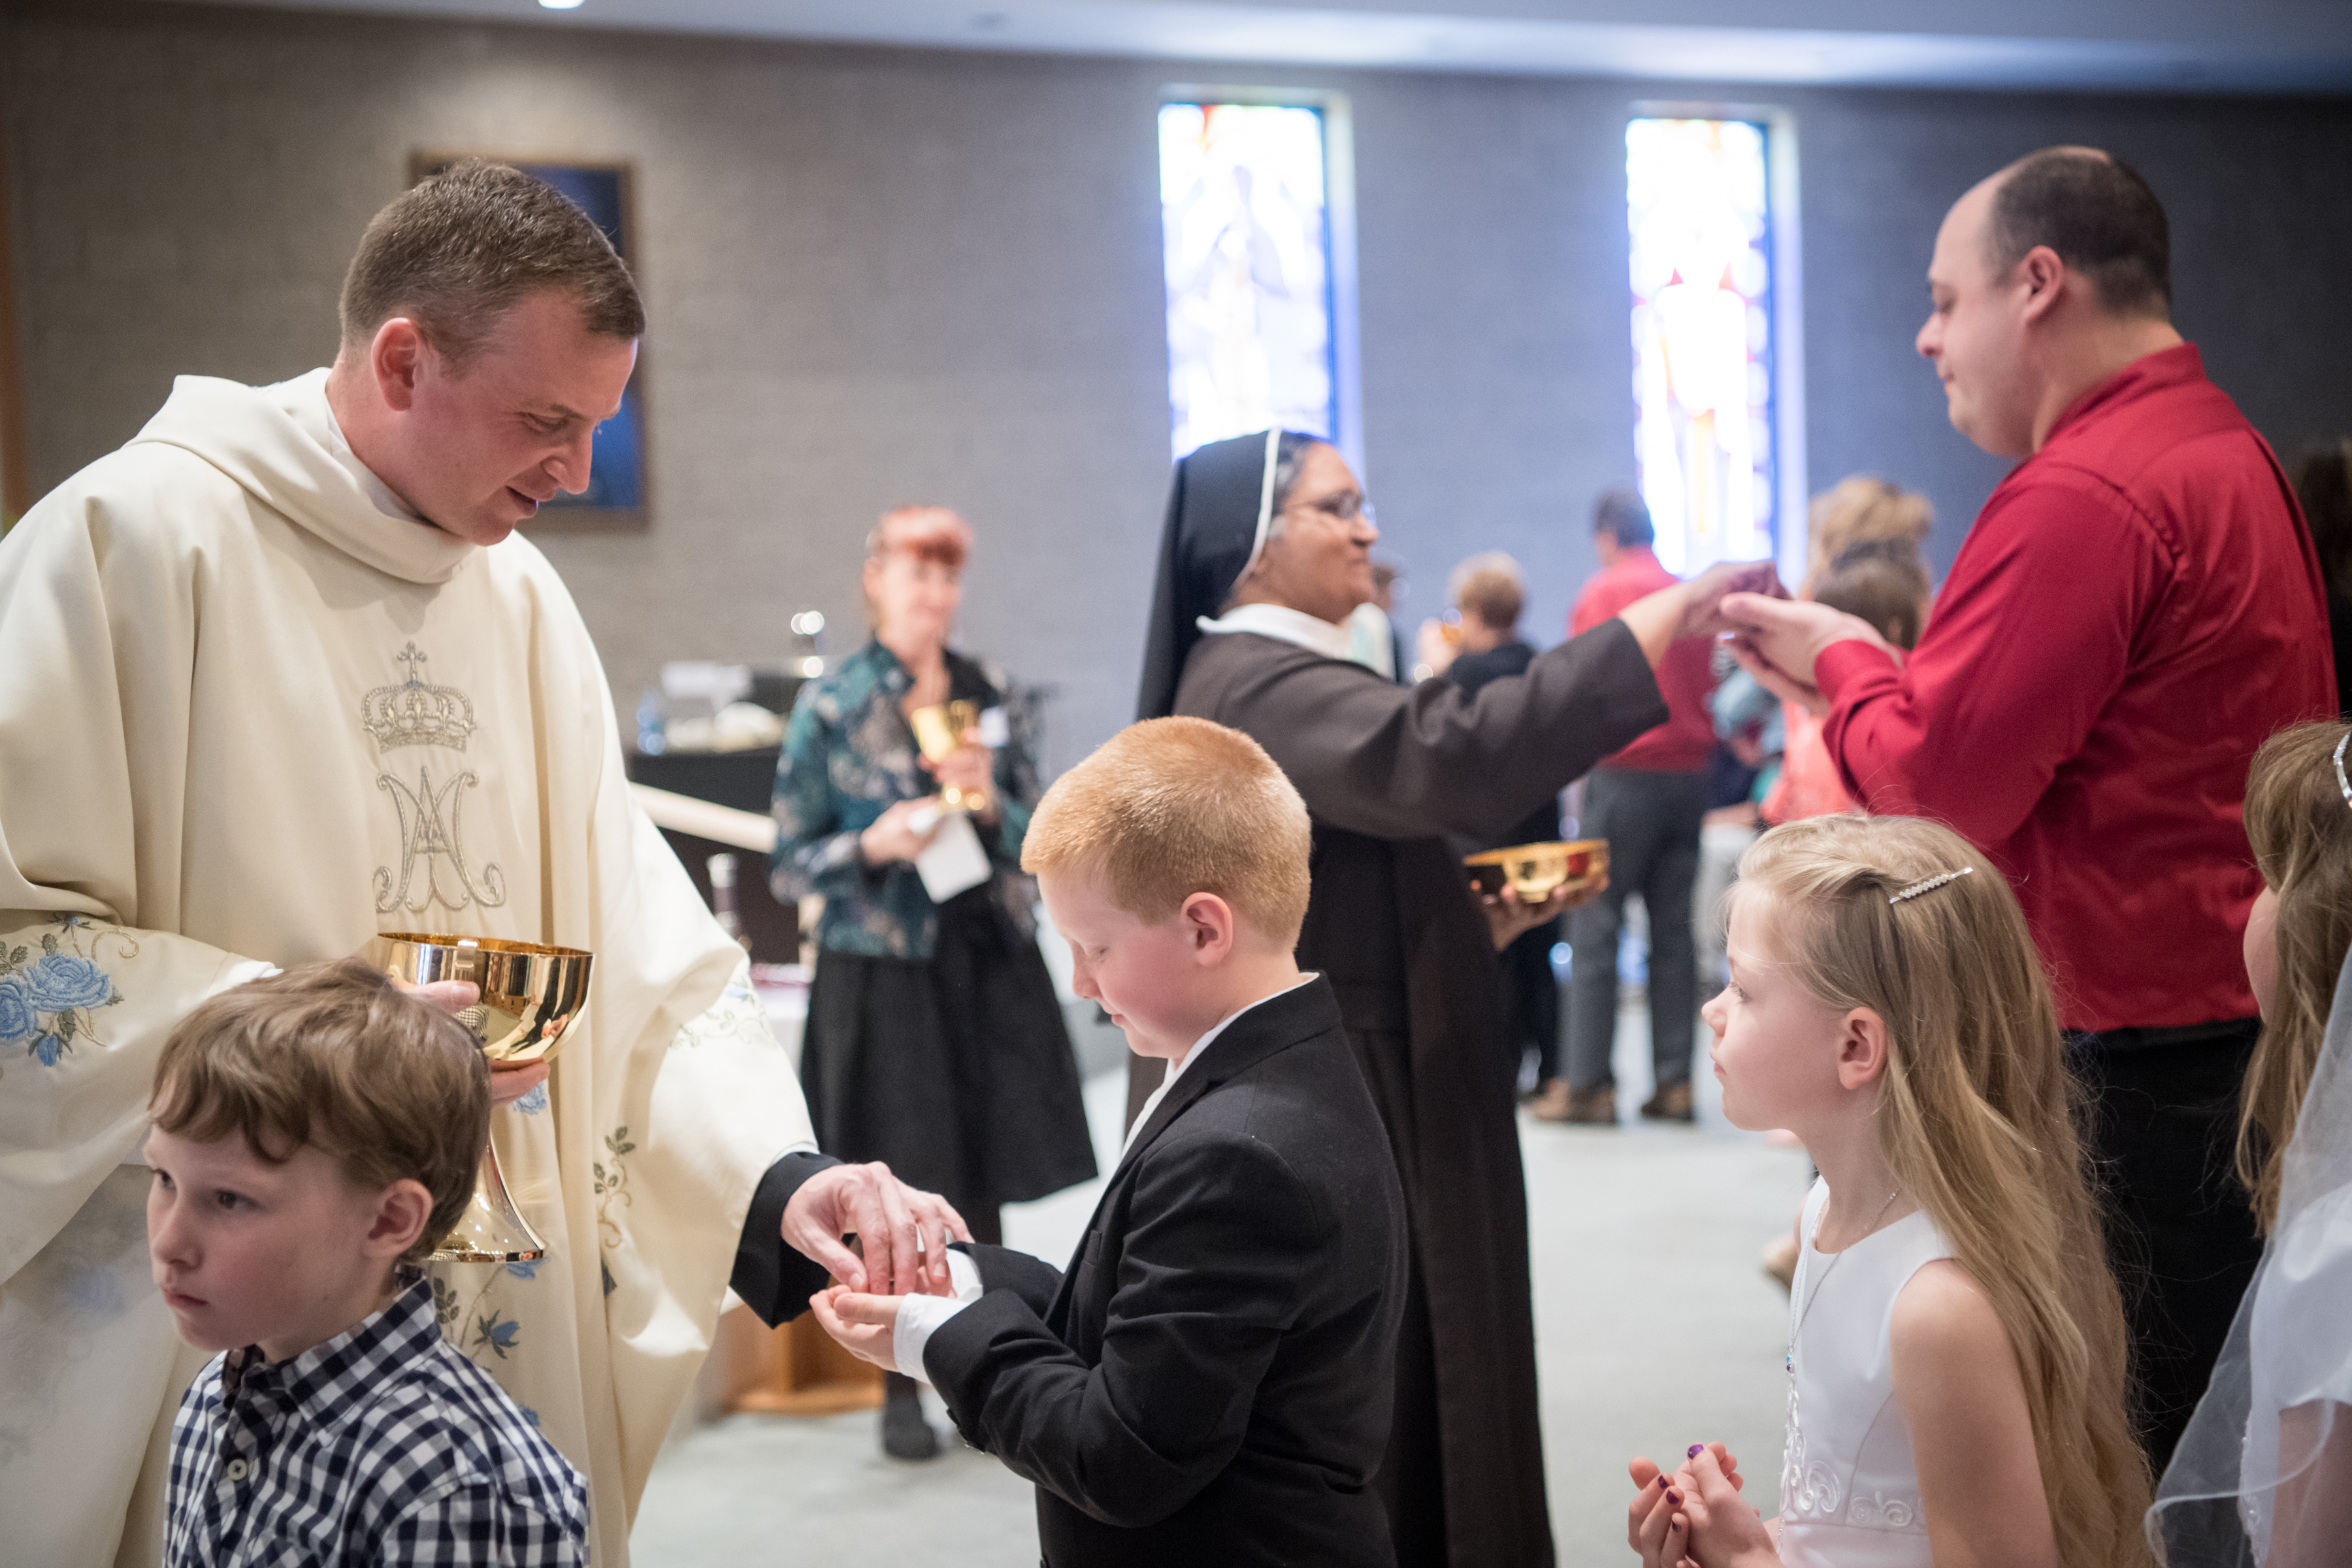 Communion for the first time - how to prepare